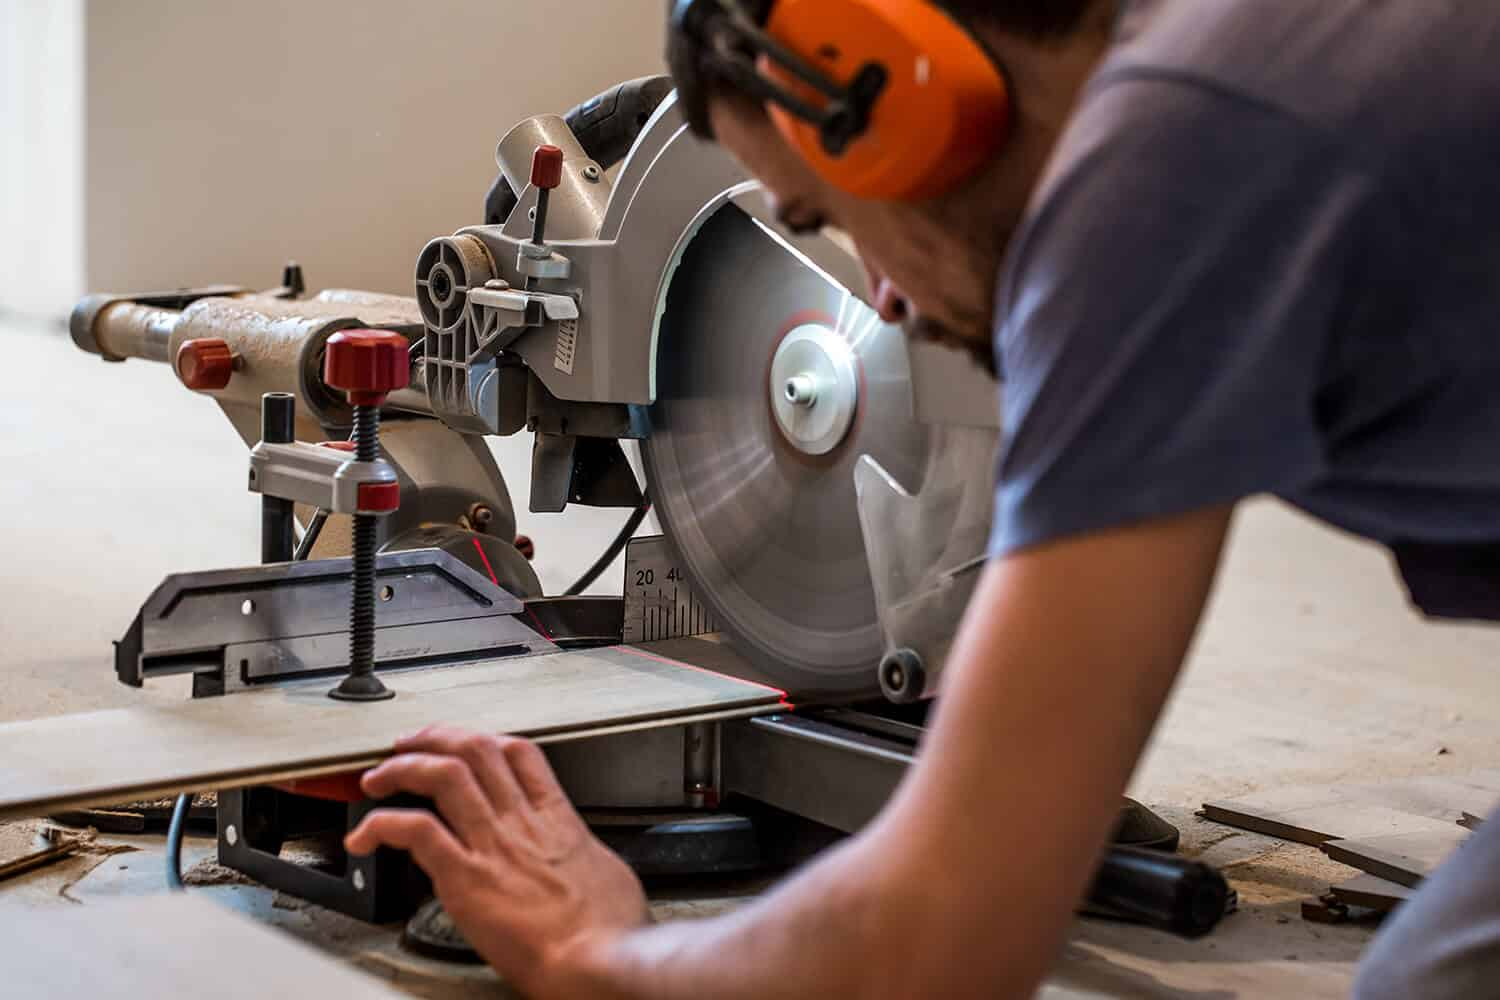 What is The Use of a Miter Saw, and What Can it Cut